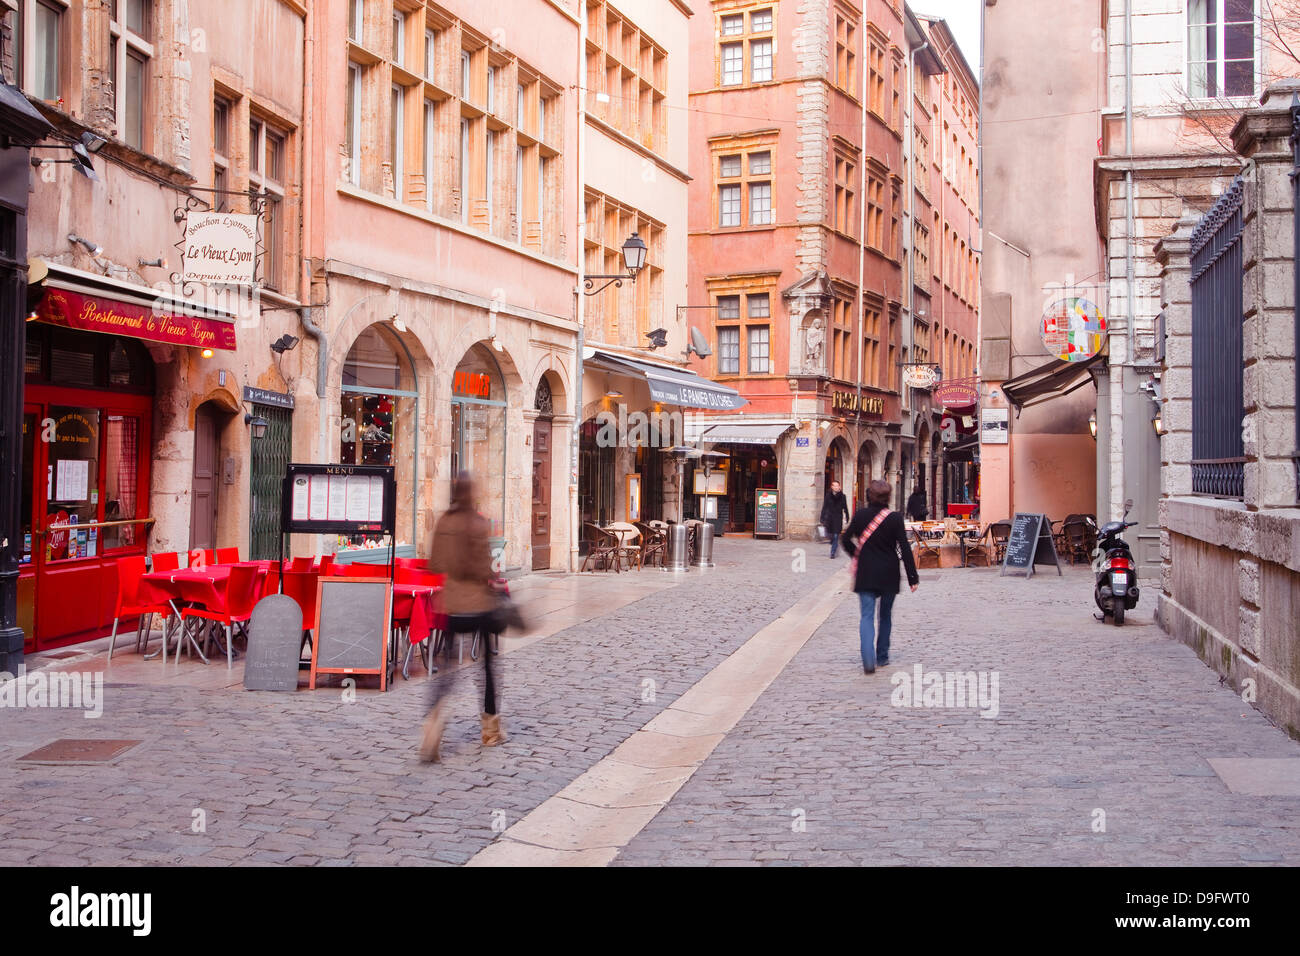 People walking in the streets of old Lyon, Lyon, Rhone-Alpes, France Stock Photo